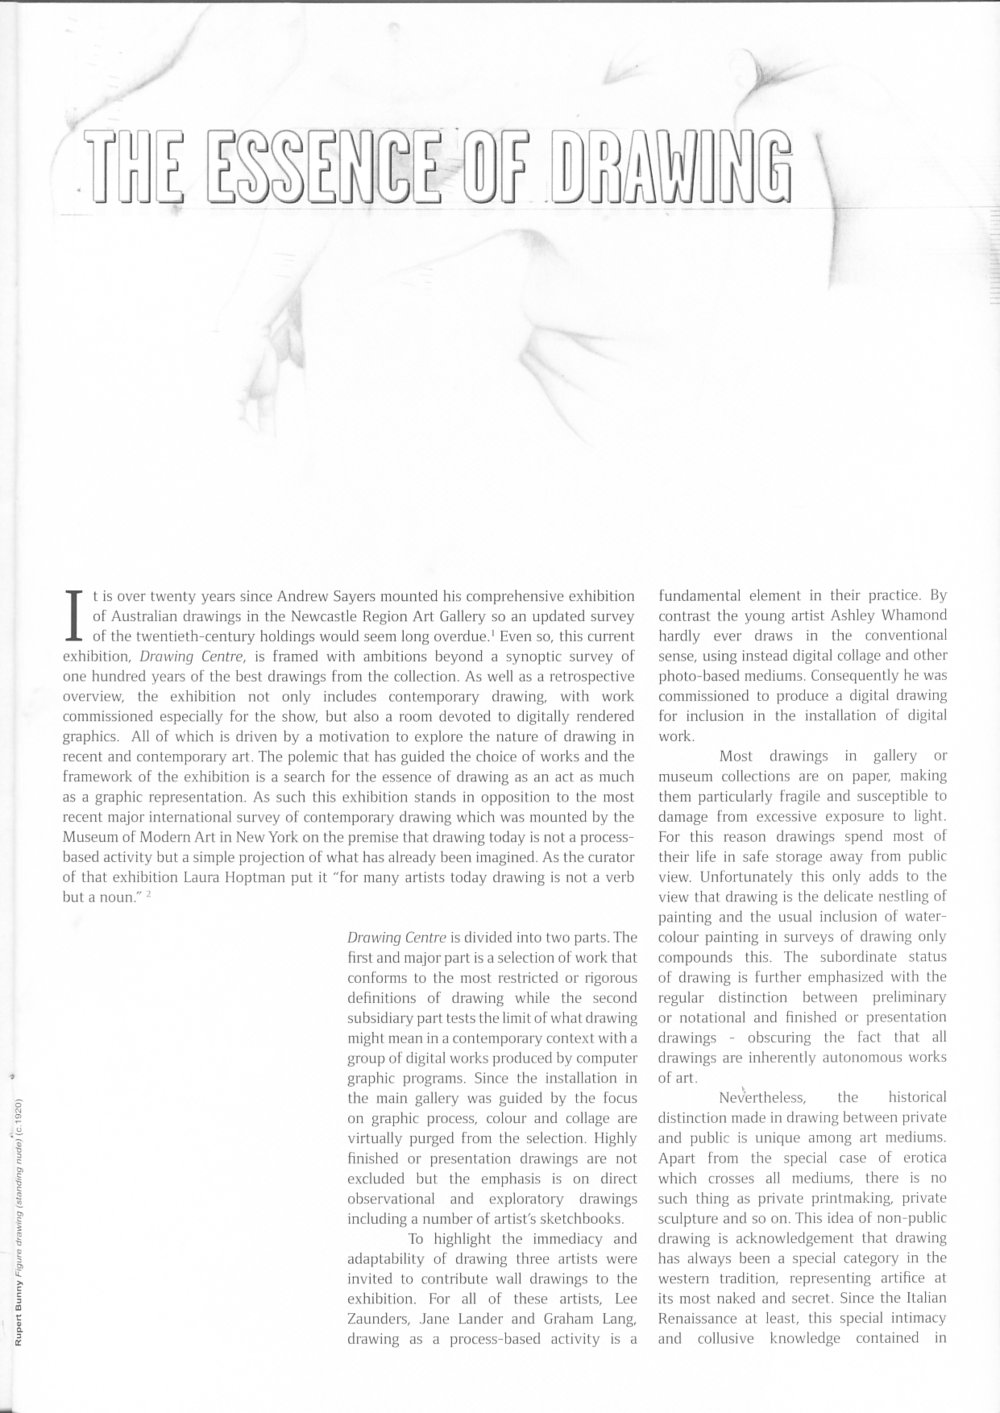 DrawingCentre-essay (1)_Page_1.jpg